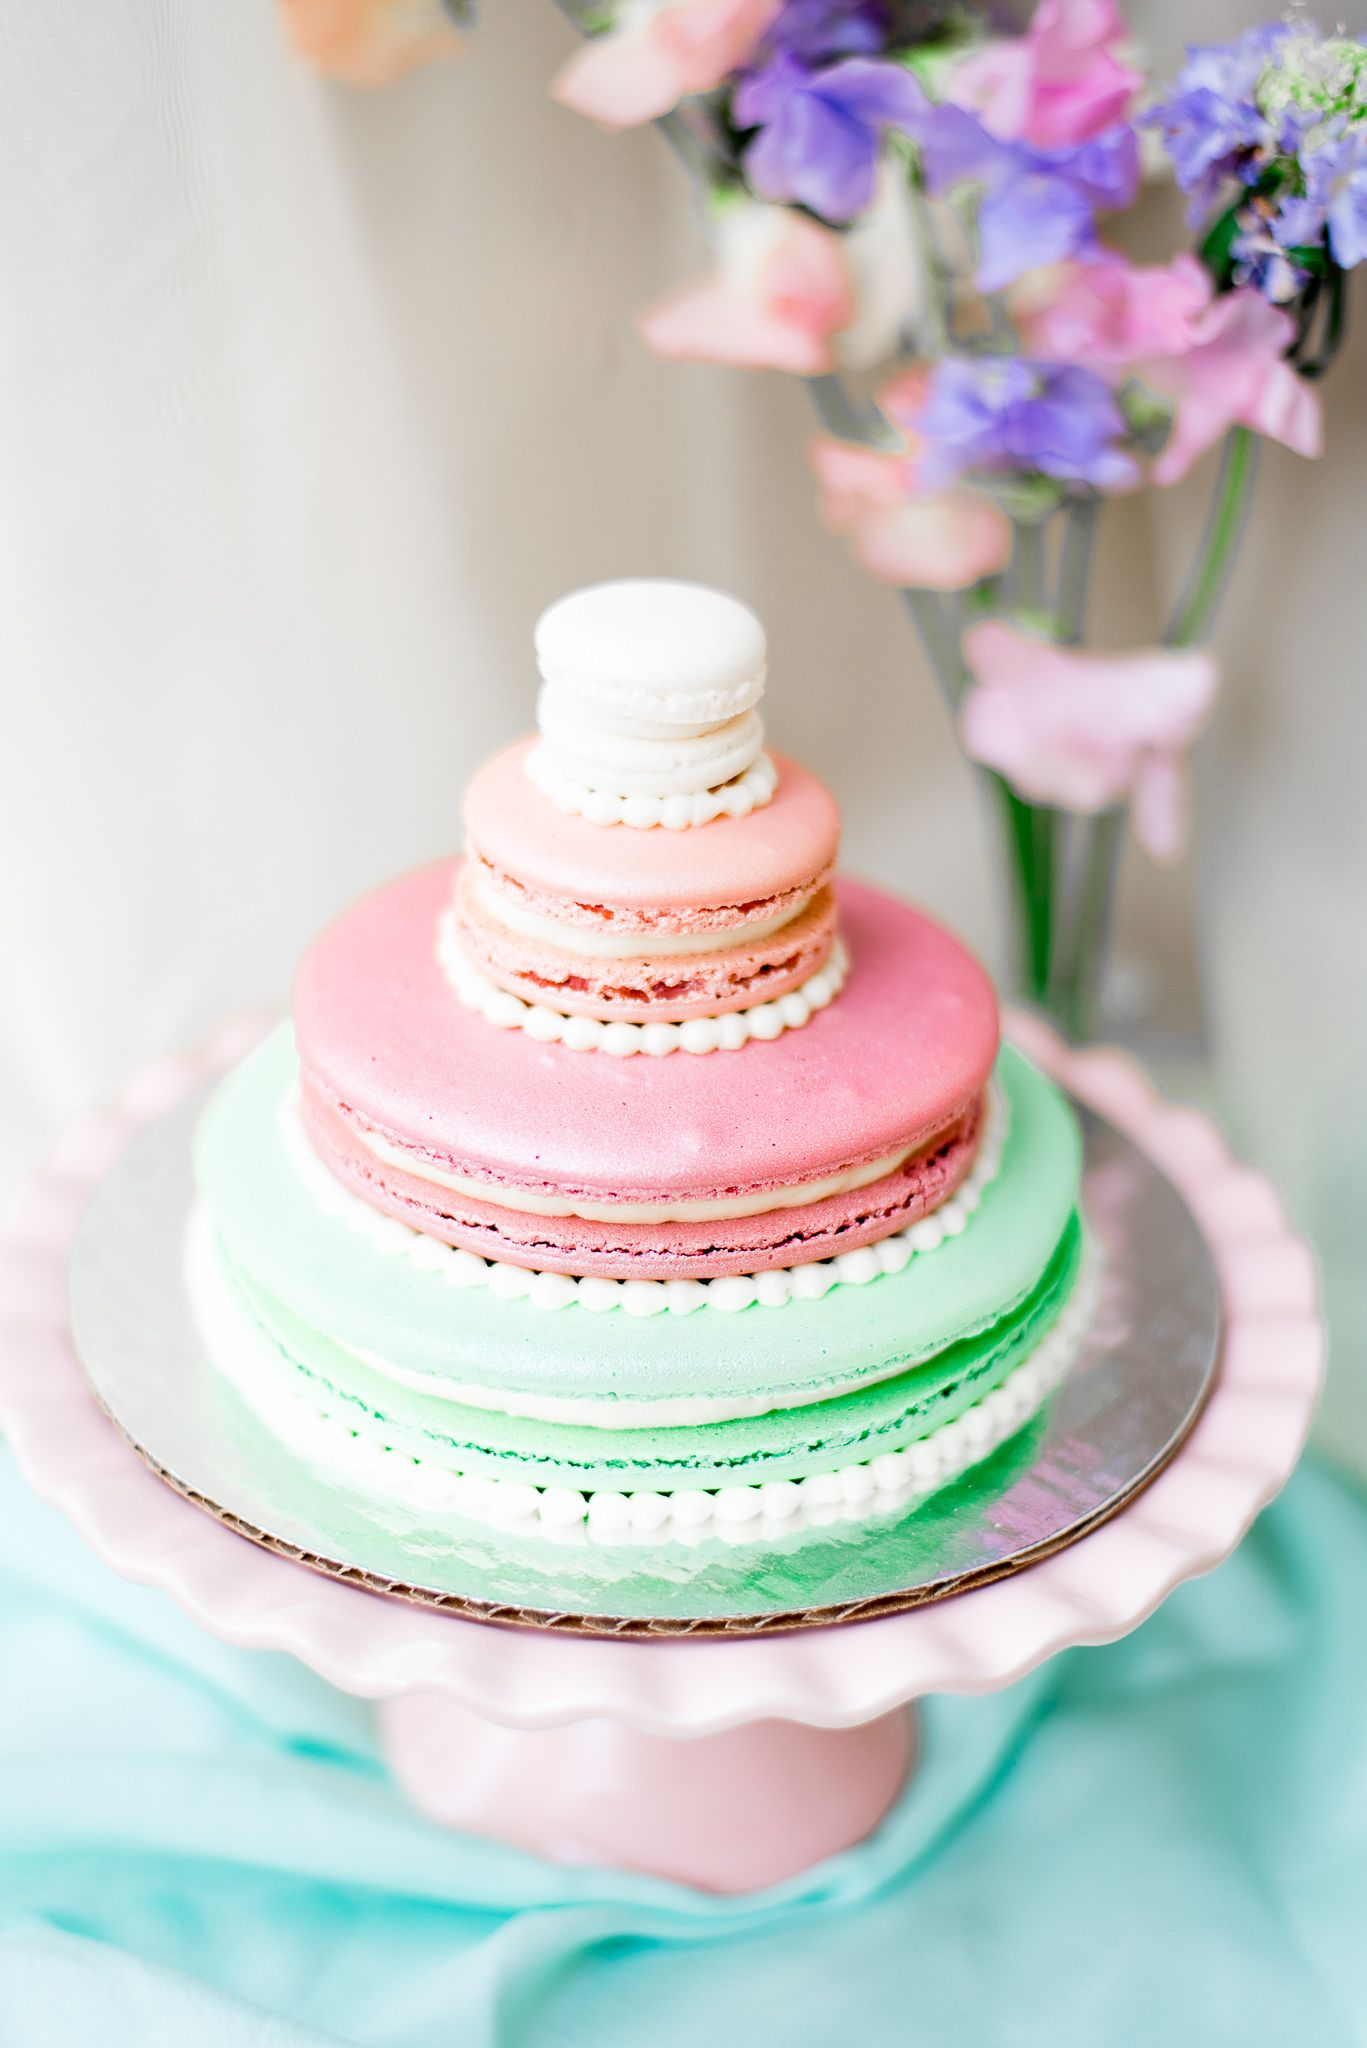 4-tiered cake of giant macarons in pink and green colors